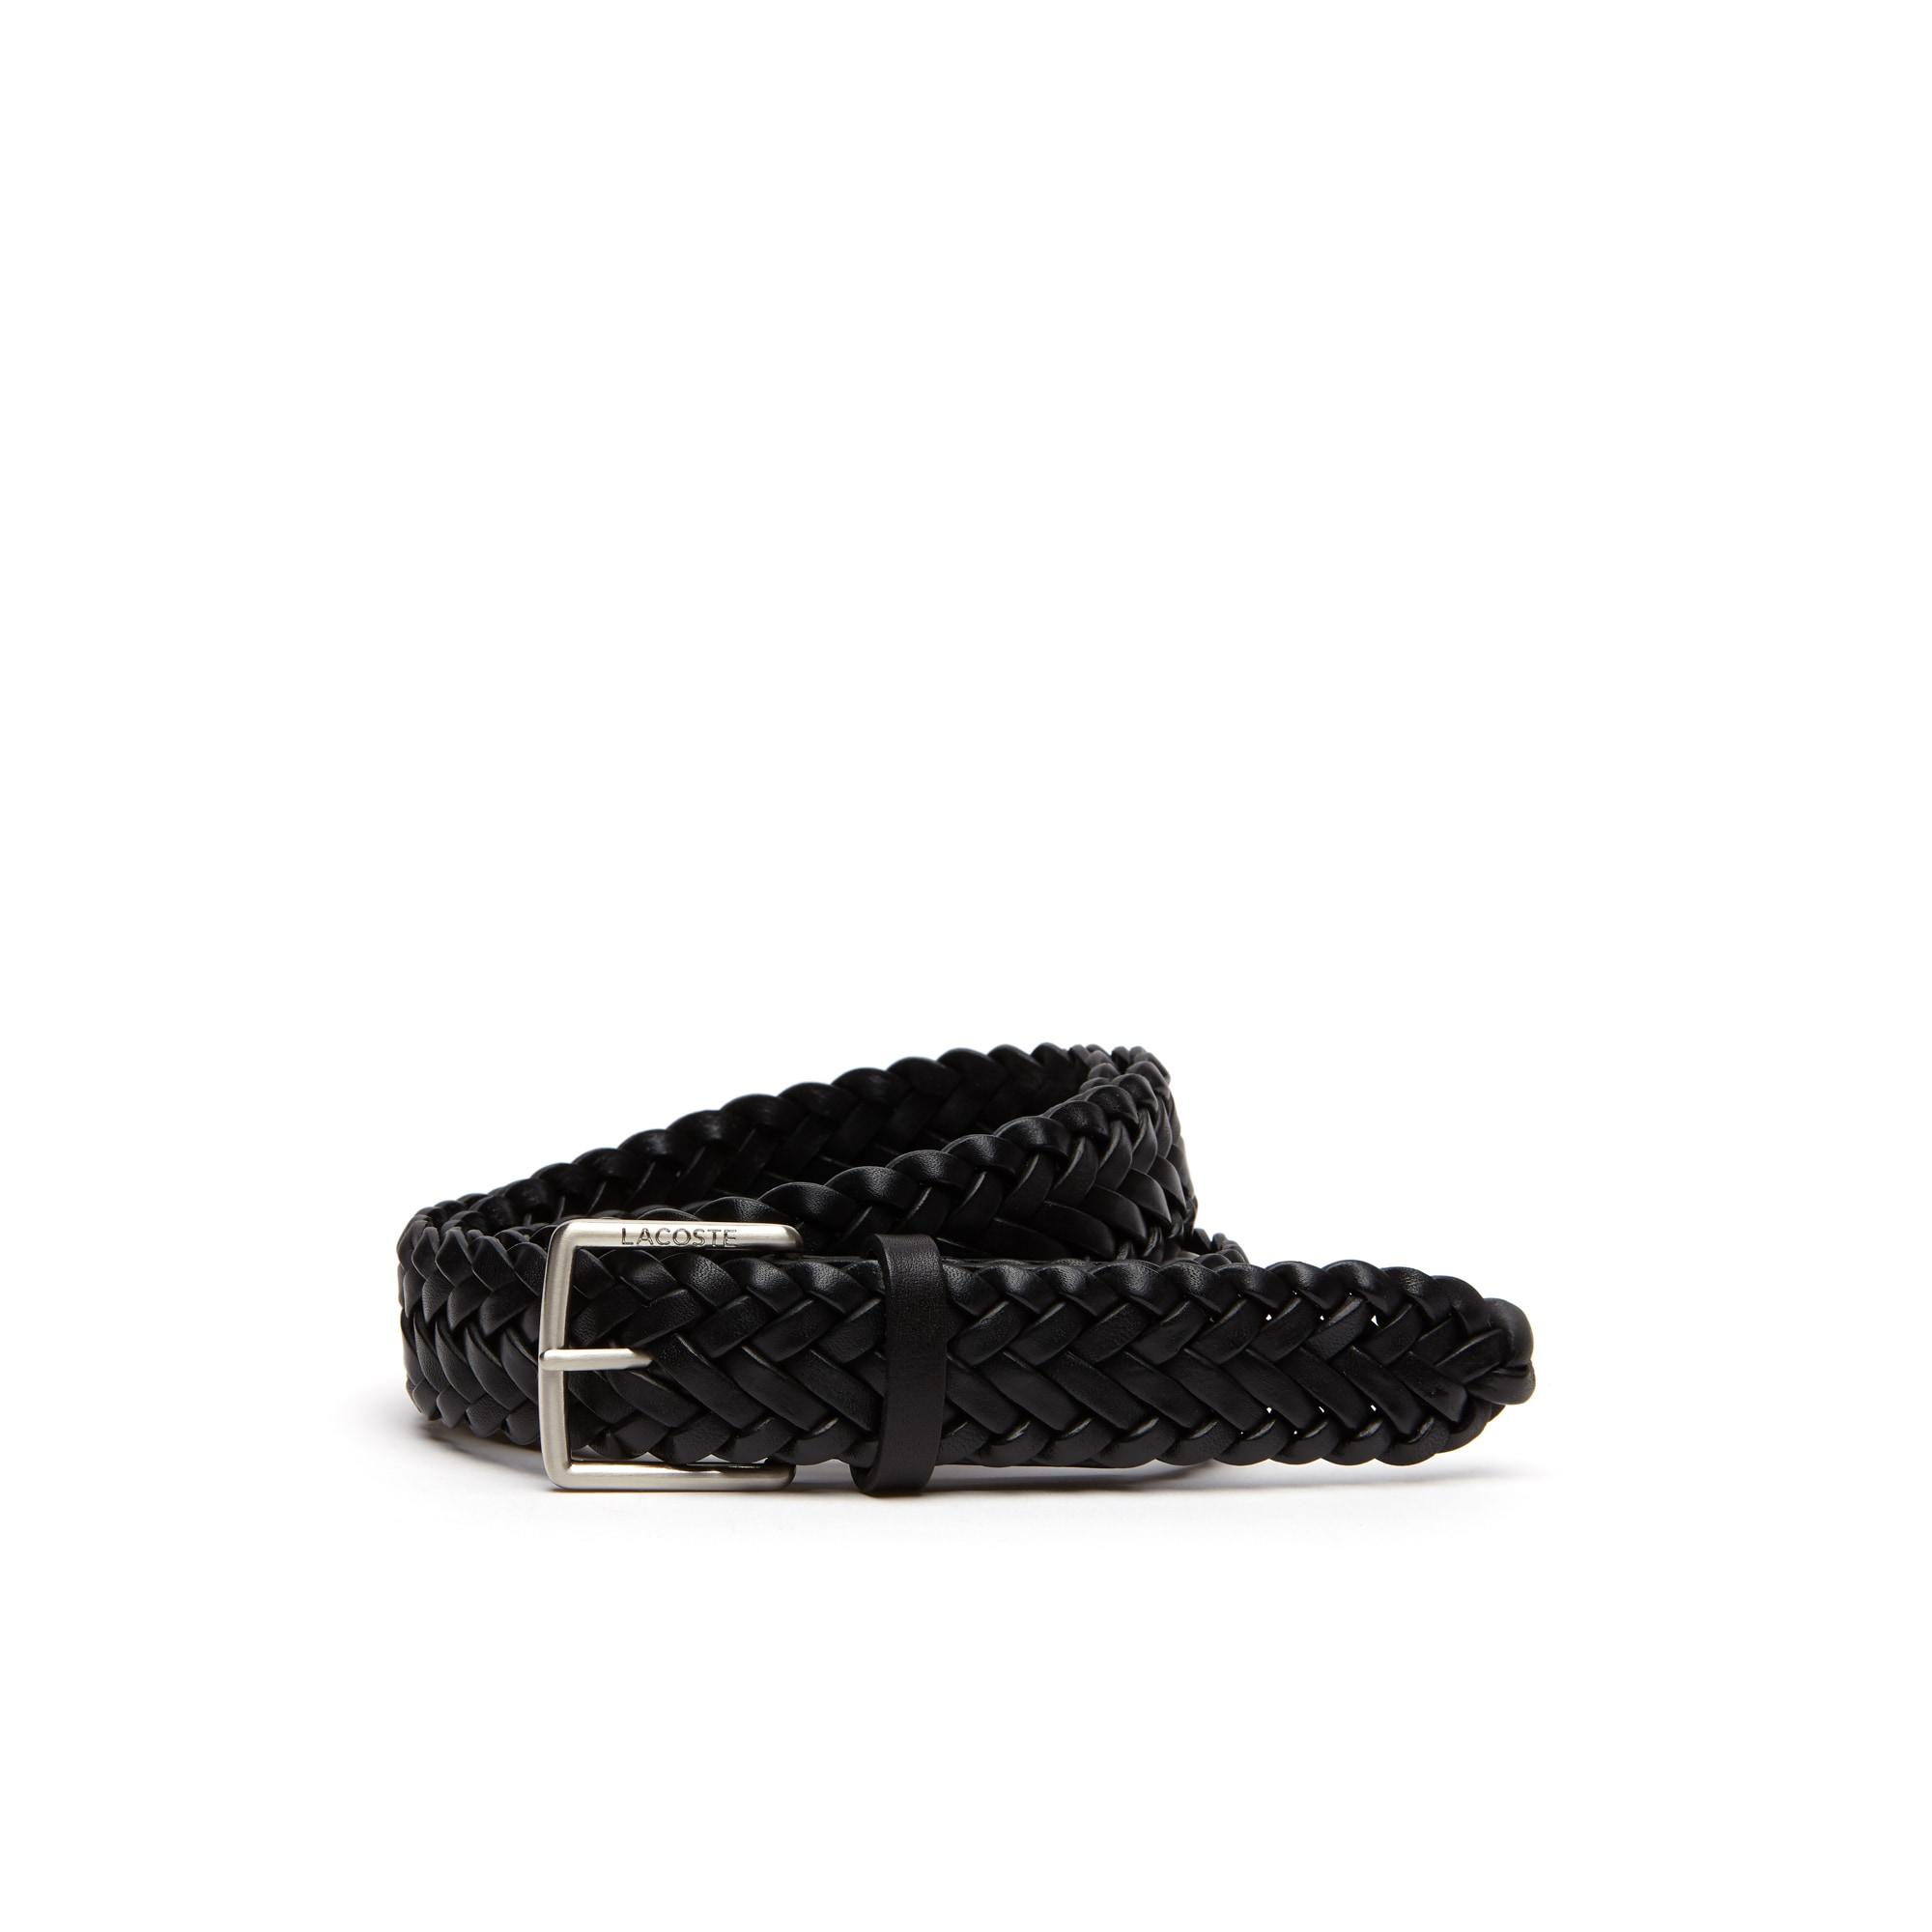 Men's Lacoste Engraved Tongue Buckle Braided Leather Belt